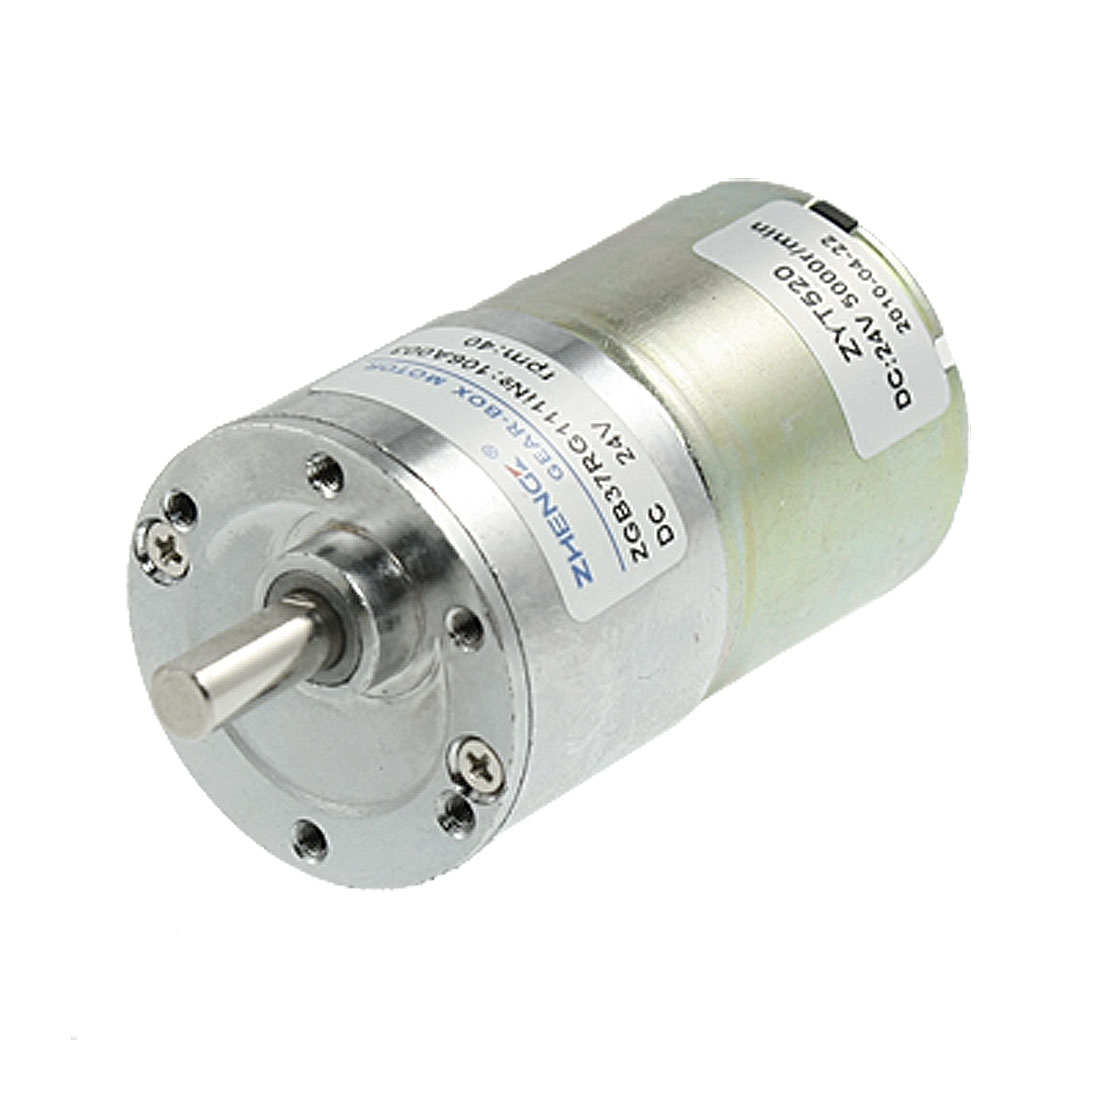 DC 24V 0.33A 40RPM Electric Speed Reducing Gearbox Motor